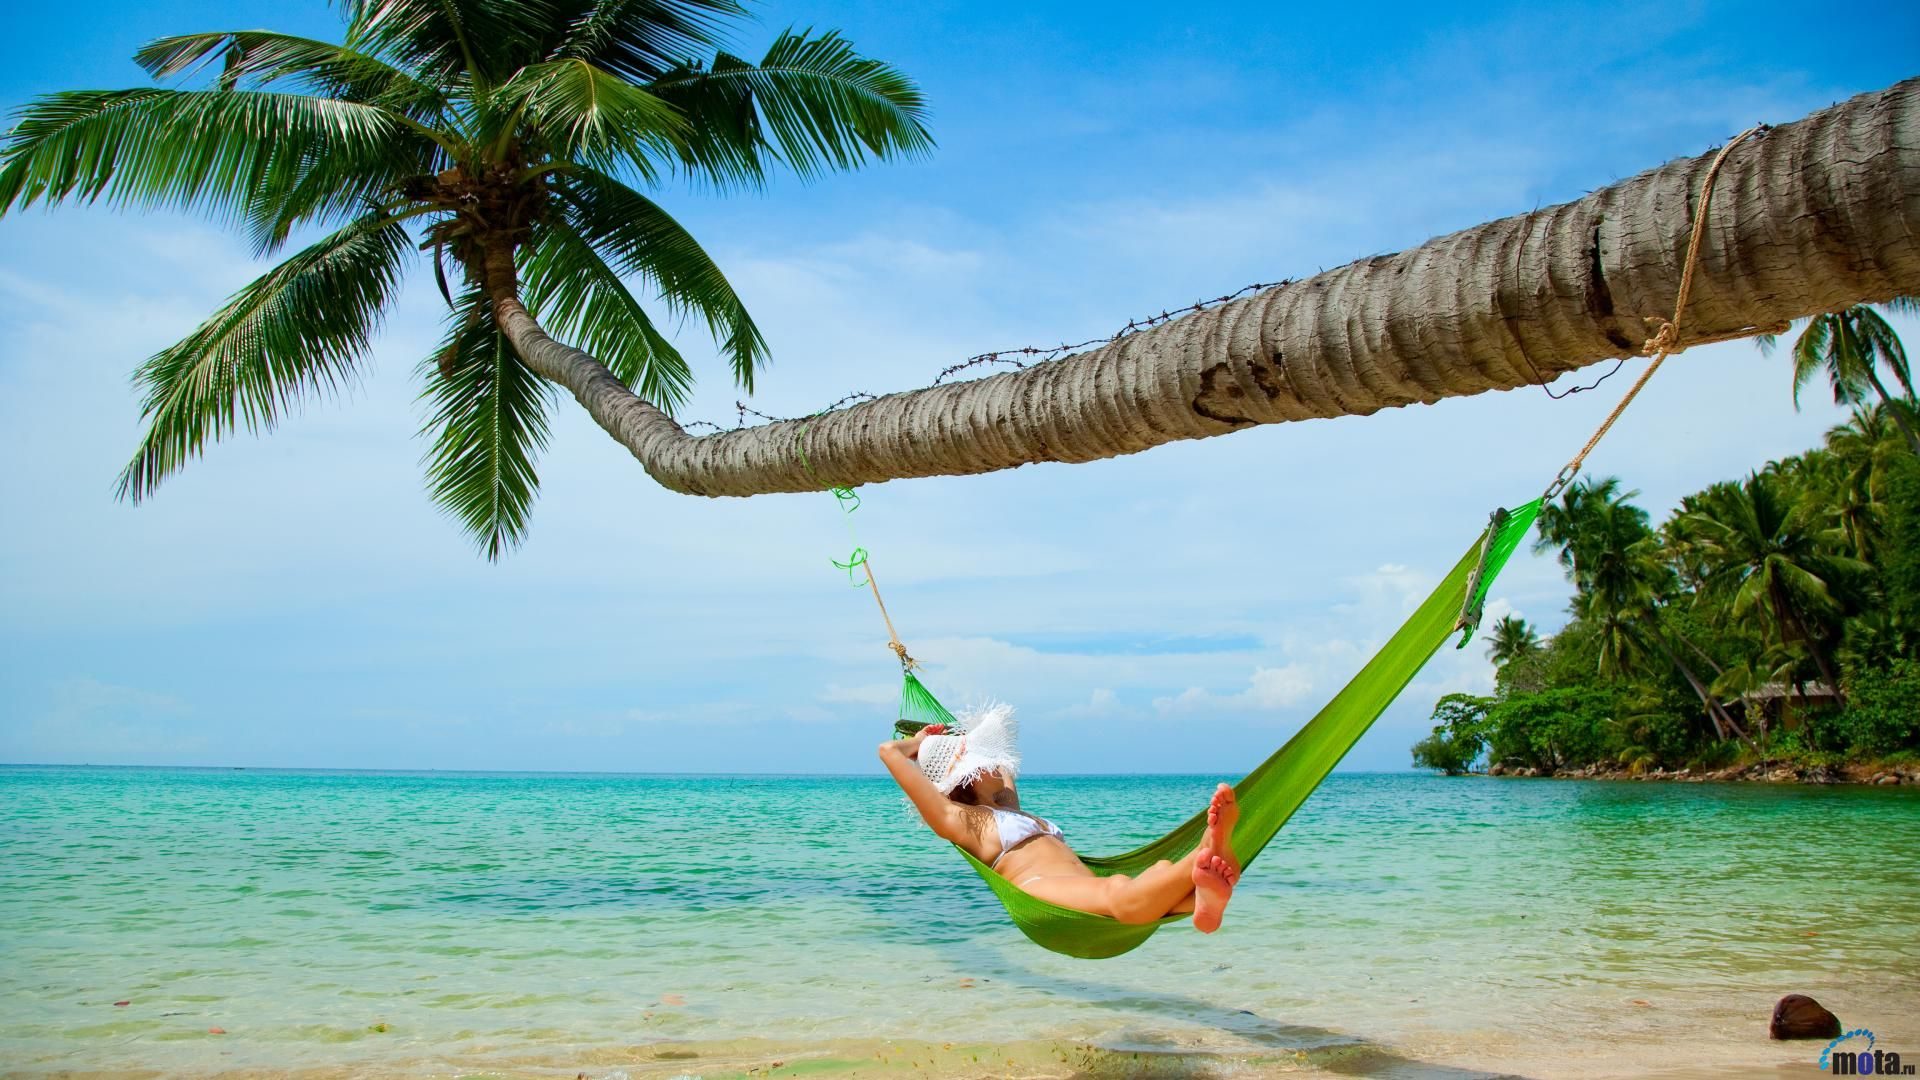 Tropical Beach Wallpaper Island Hammock Free Desktop Toobjects 1920x1080px